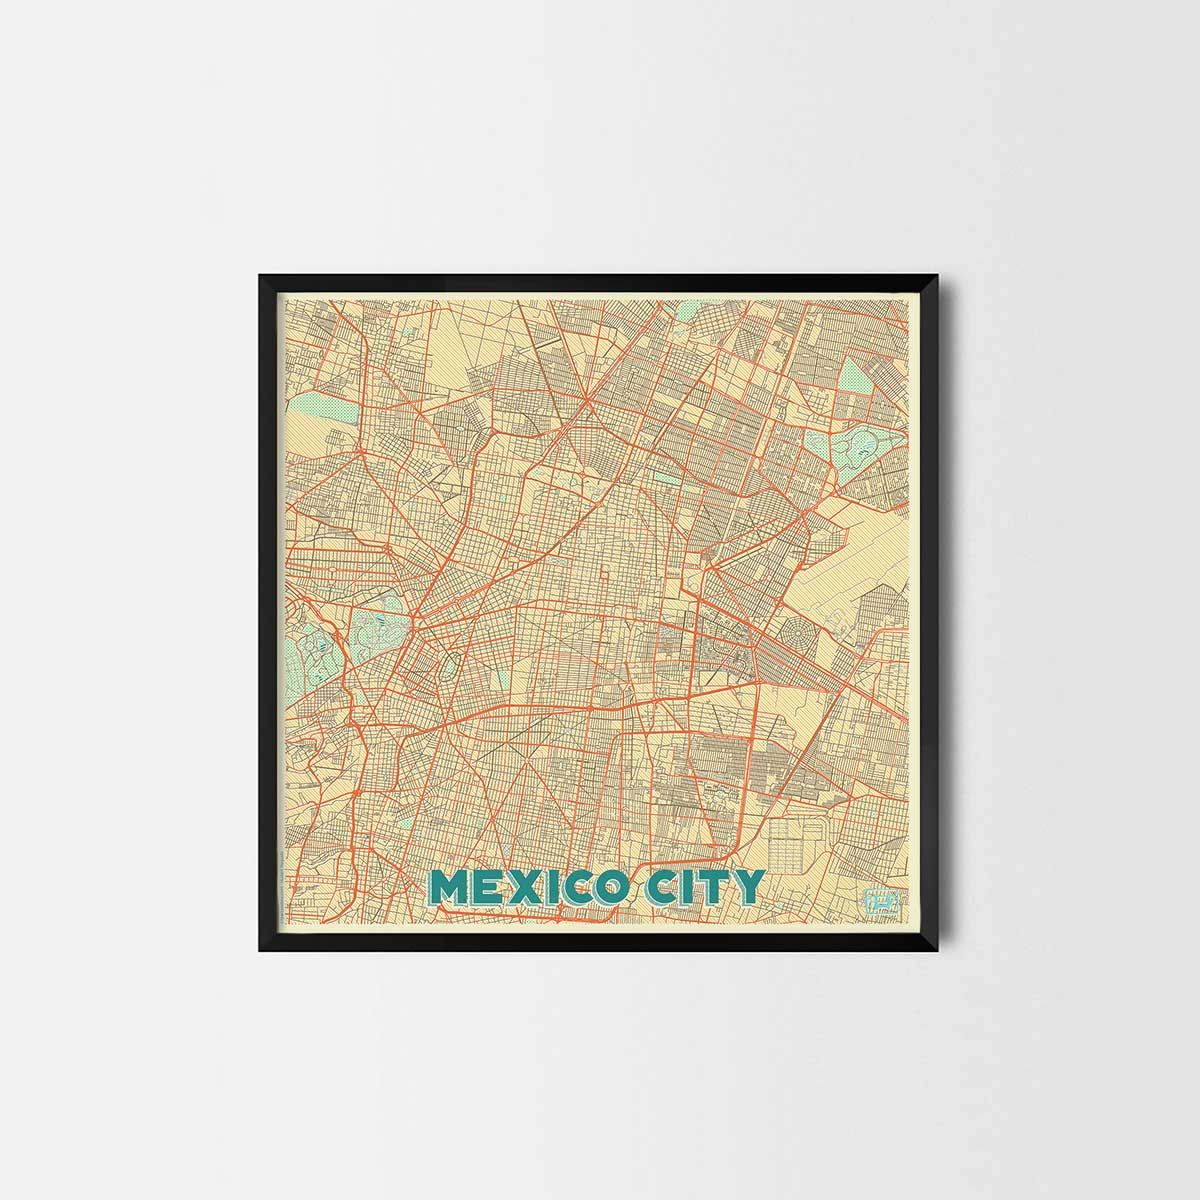 Mexico City Prints - City Art Posters and Map Prints | Cool houses ...